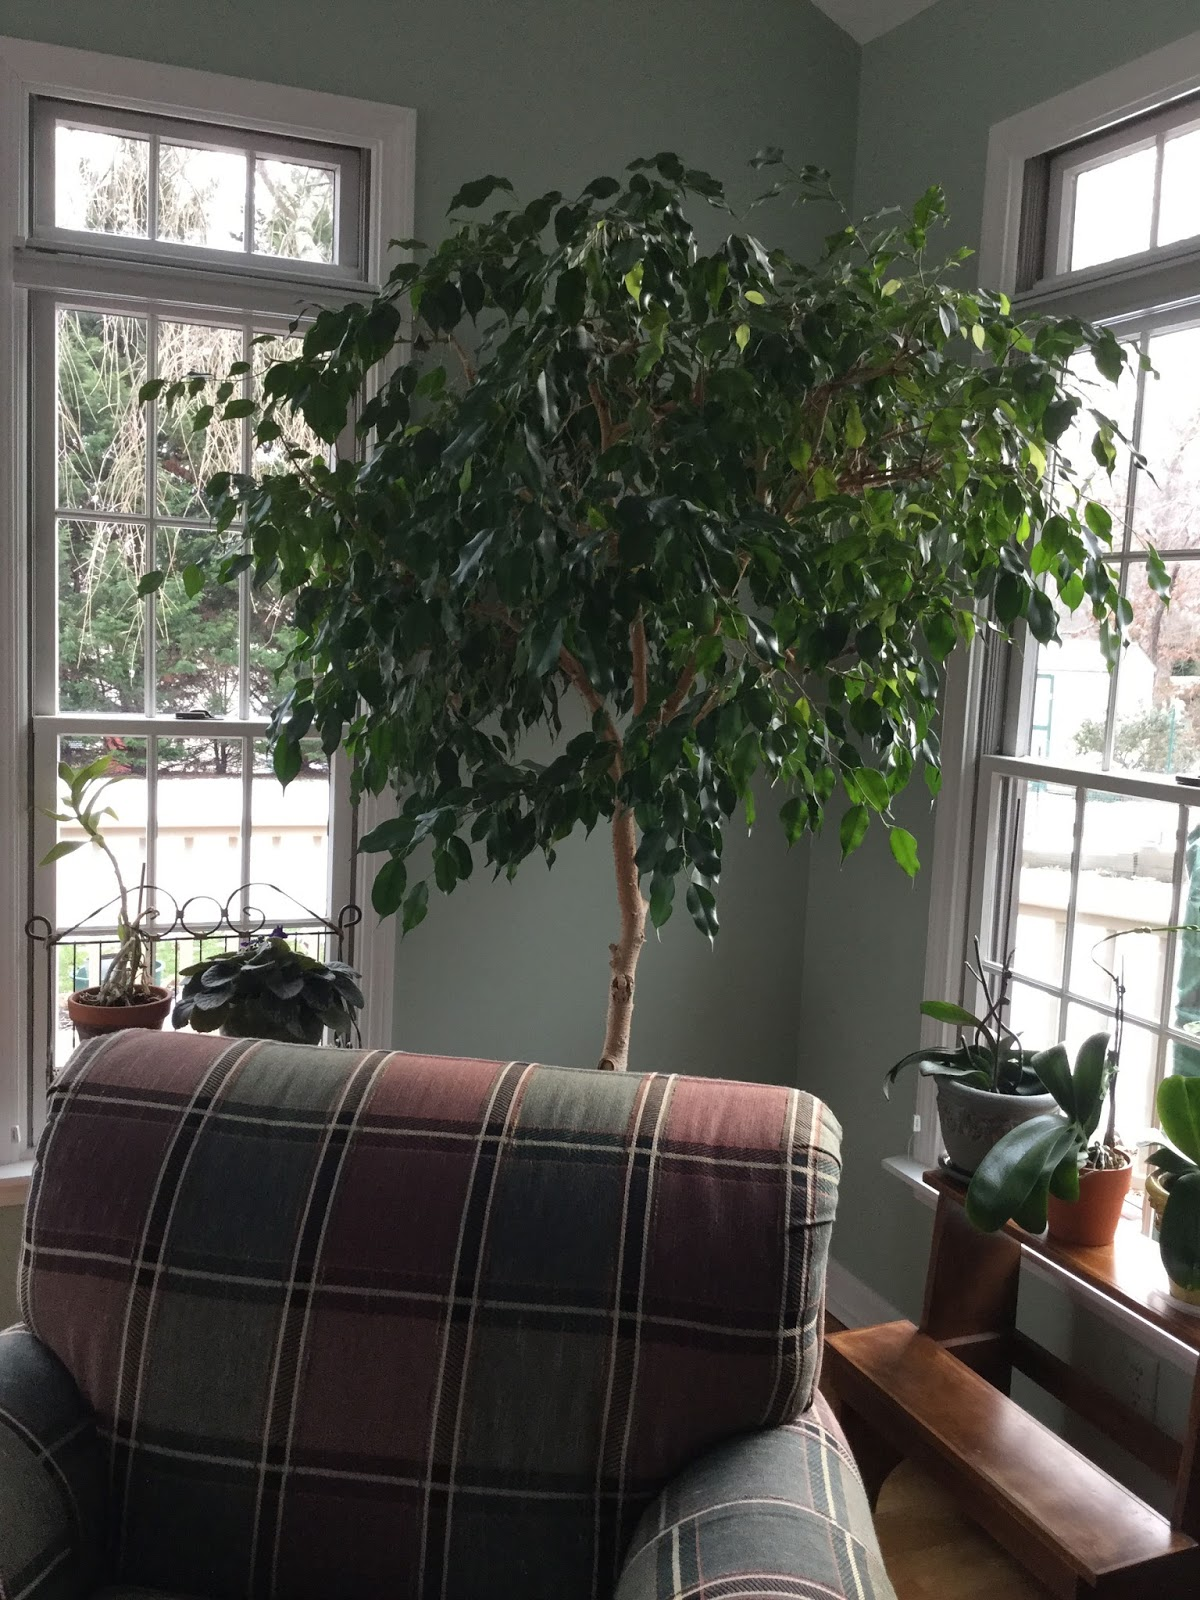 Five Keys To Growing A Healthy Ficus Tree JustOneDonna